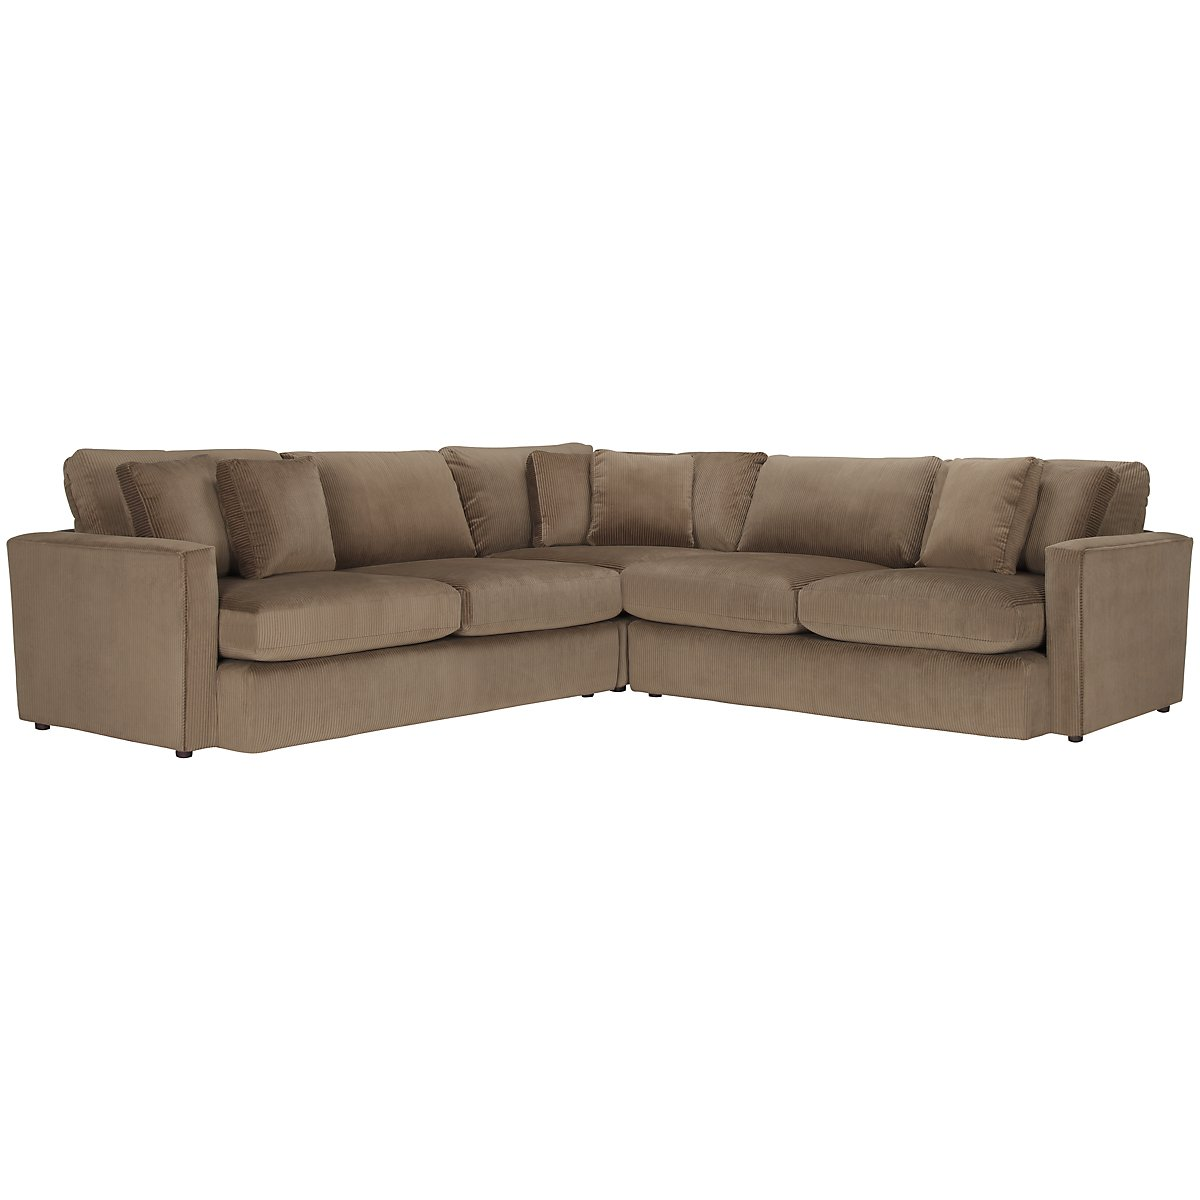 Tara2 Dk Taupe Microfiber Small Two-Arm Sectional